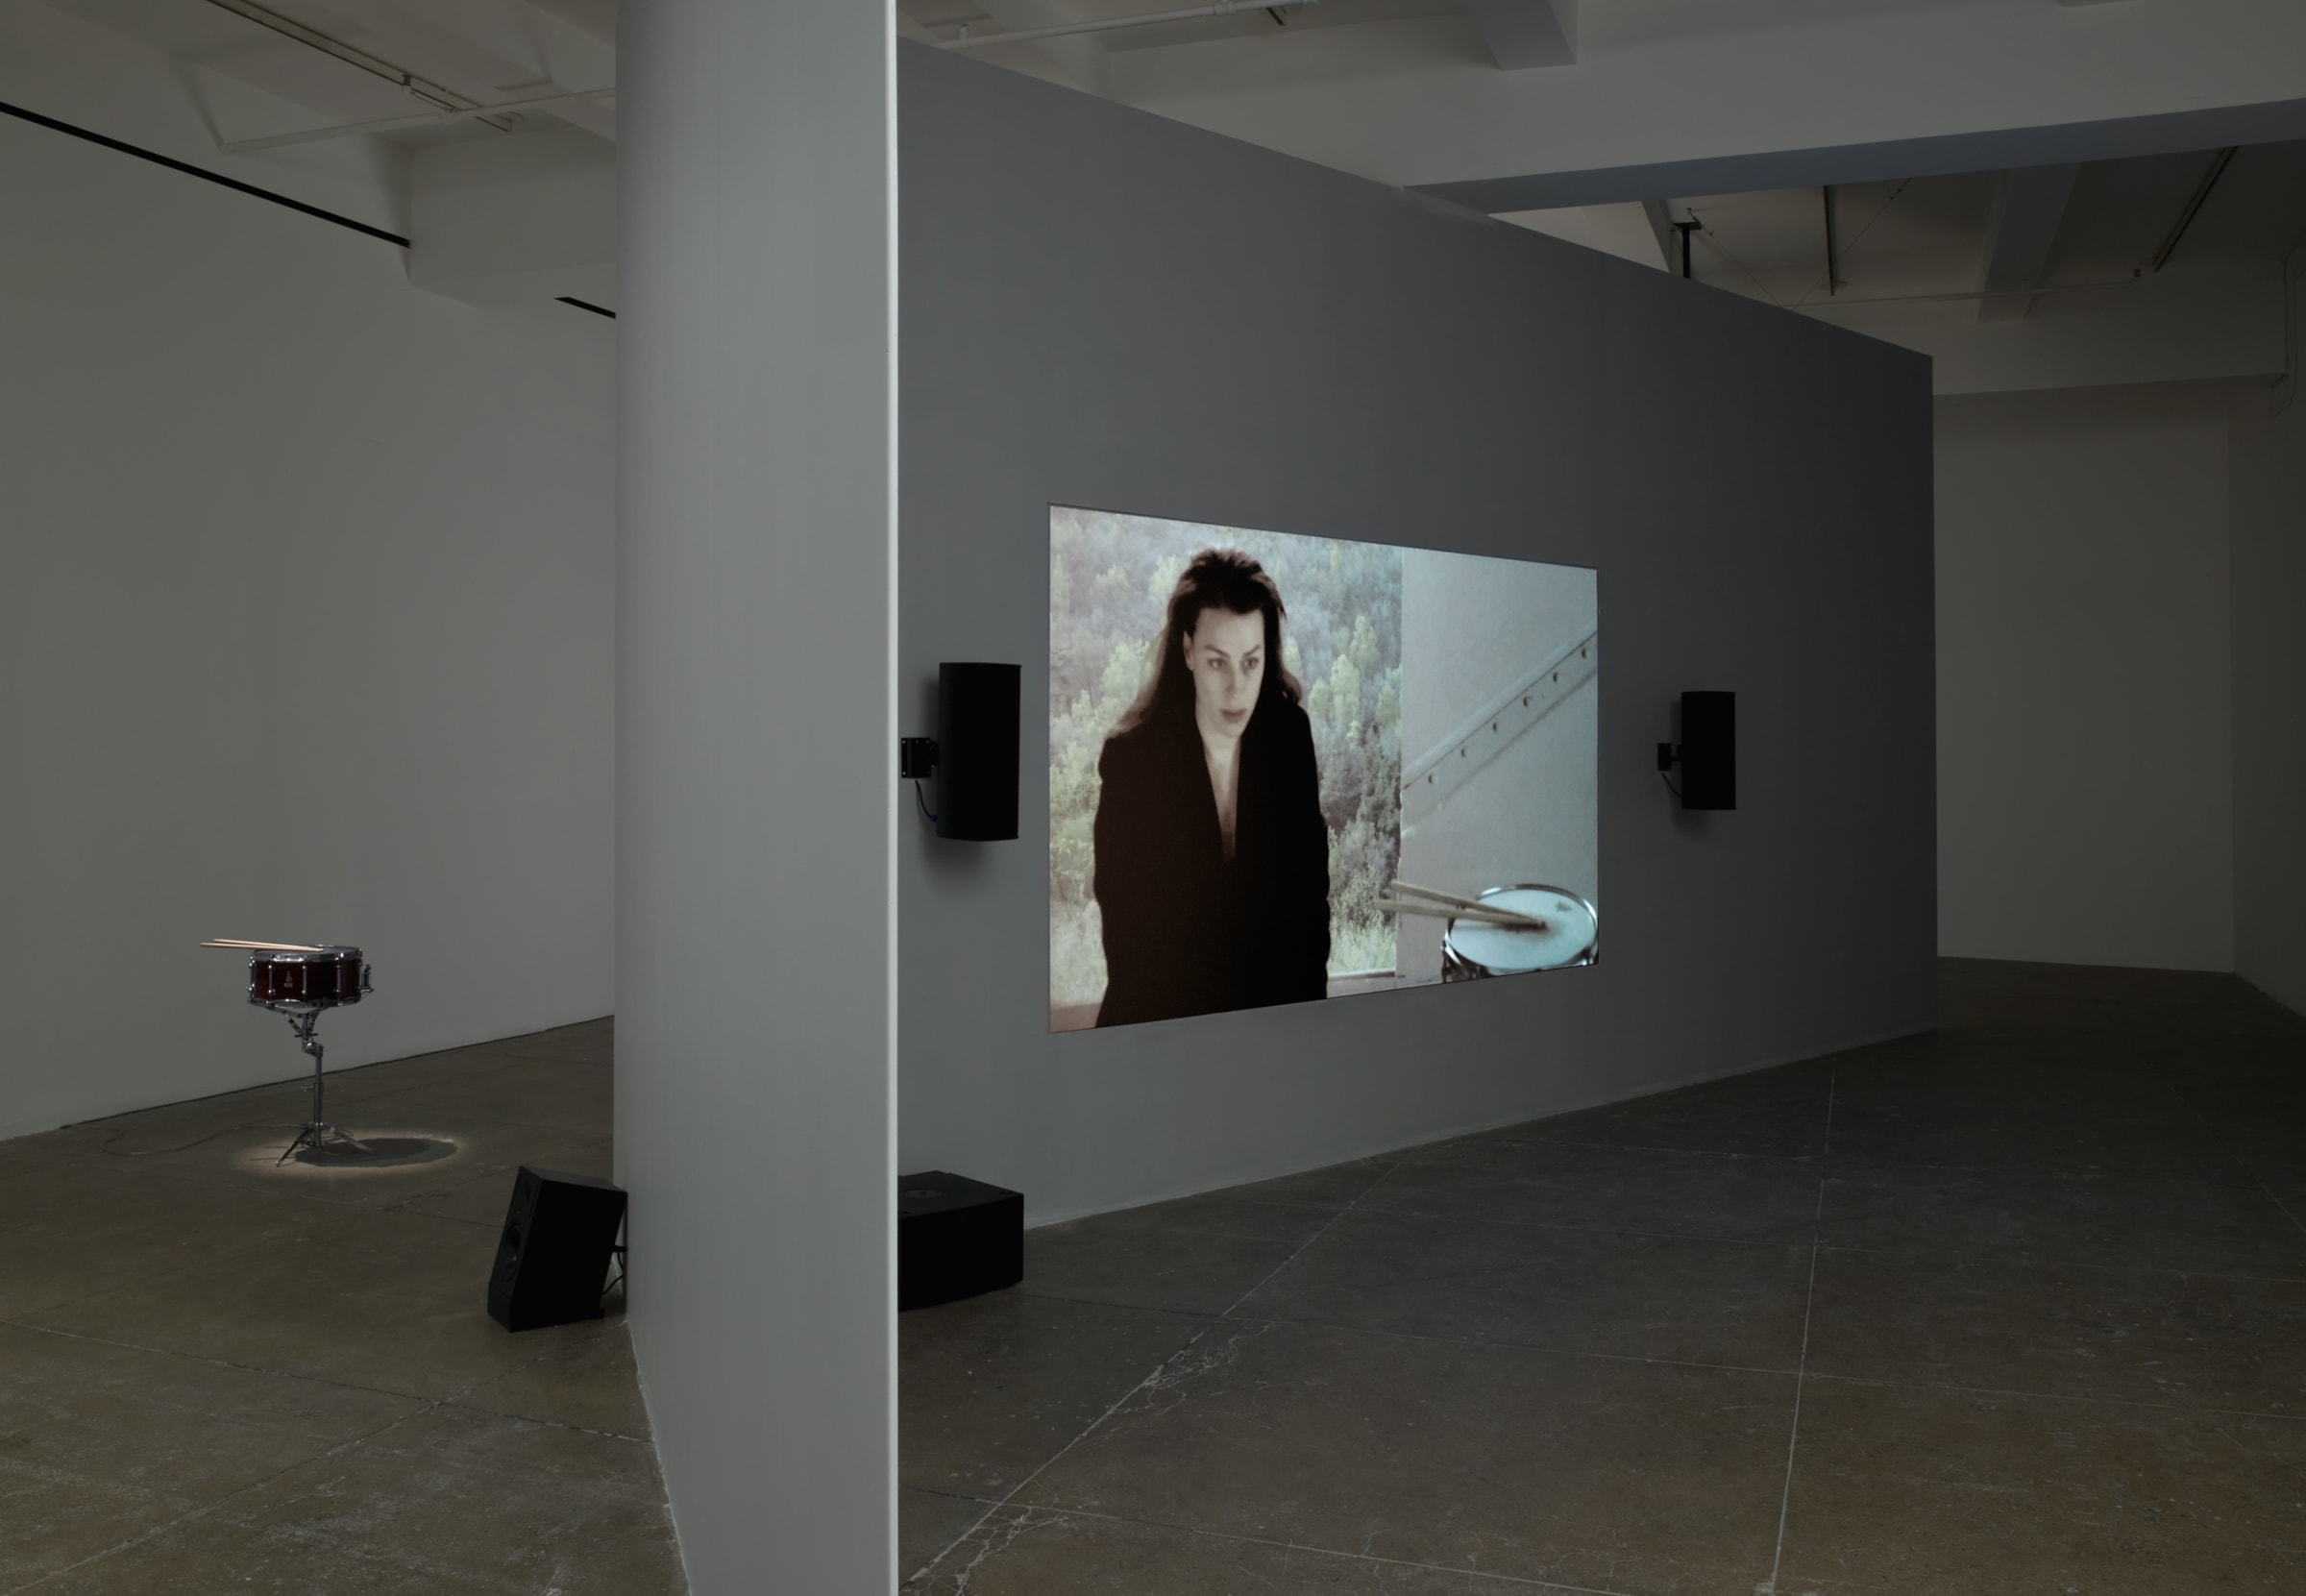 A projection of a woman is centered on a floating wall; 4 black speakers are visible around the screen and a snare kit sits behind the wall.